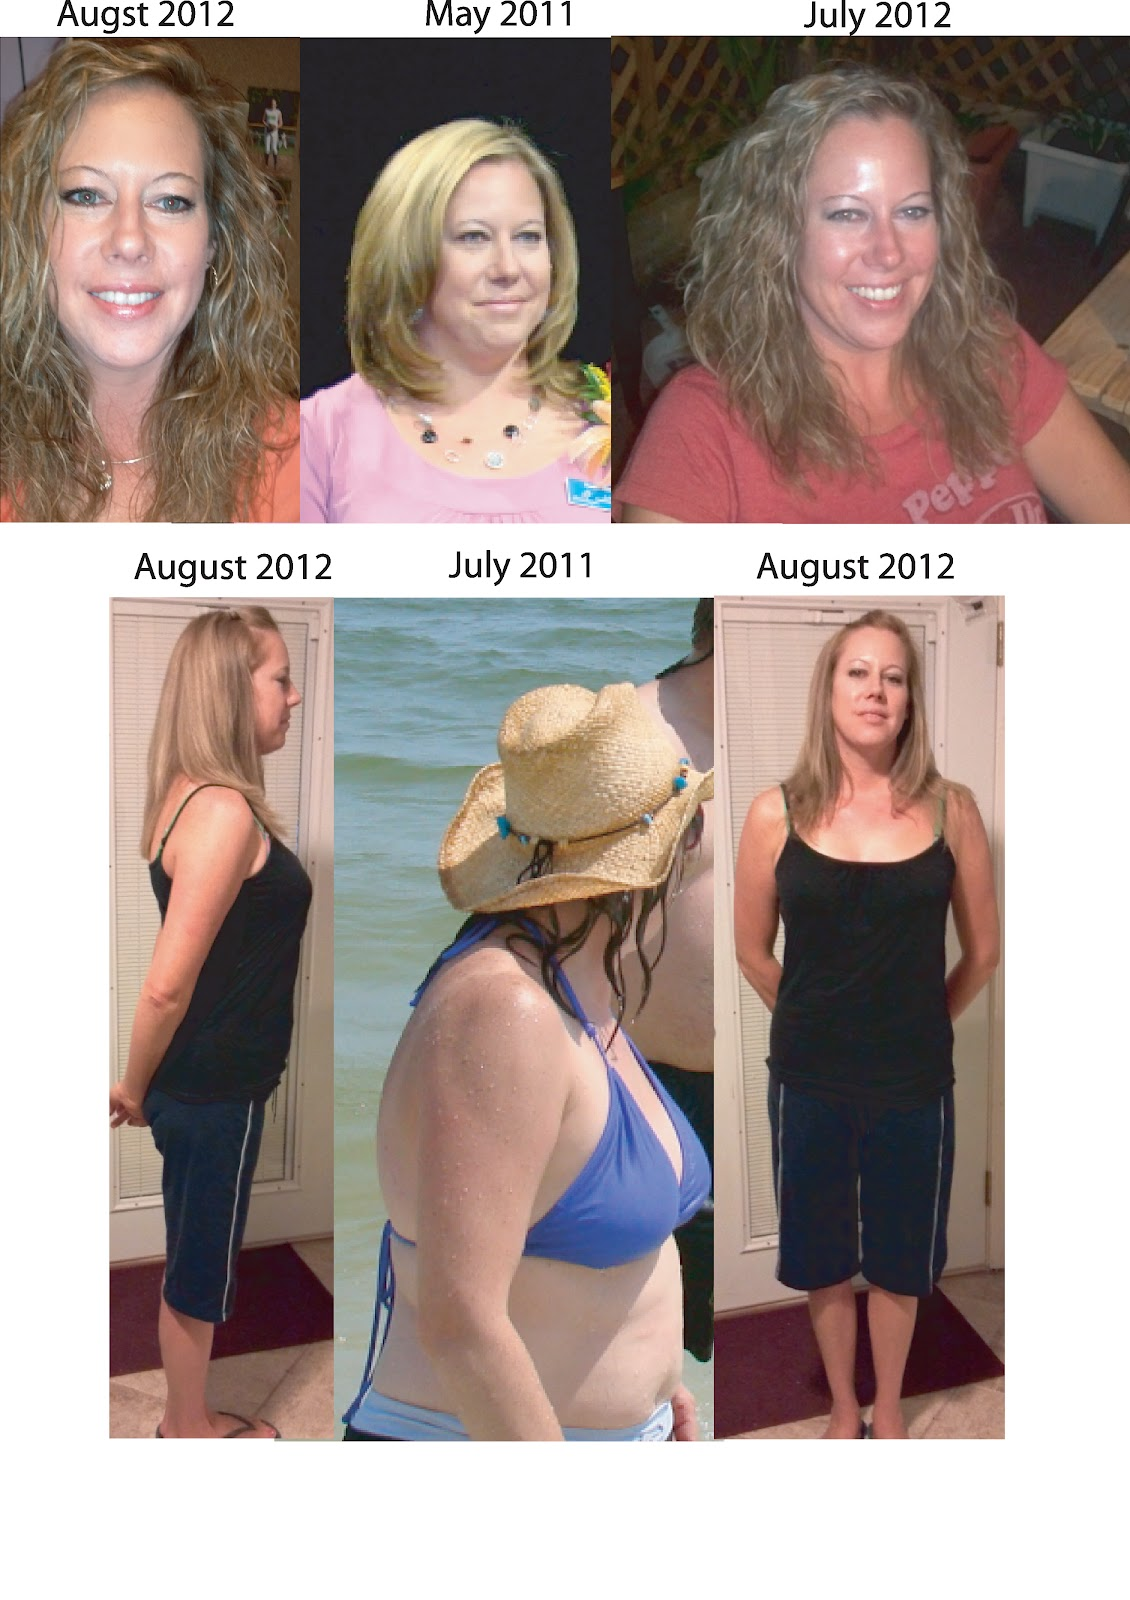 Plexus Slim Before And After http://weightlossplexusslim.blogspot.com/